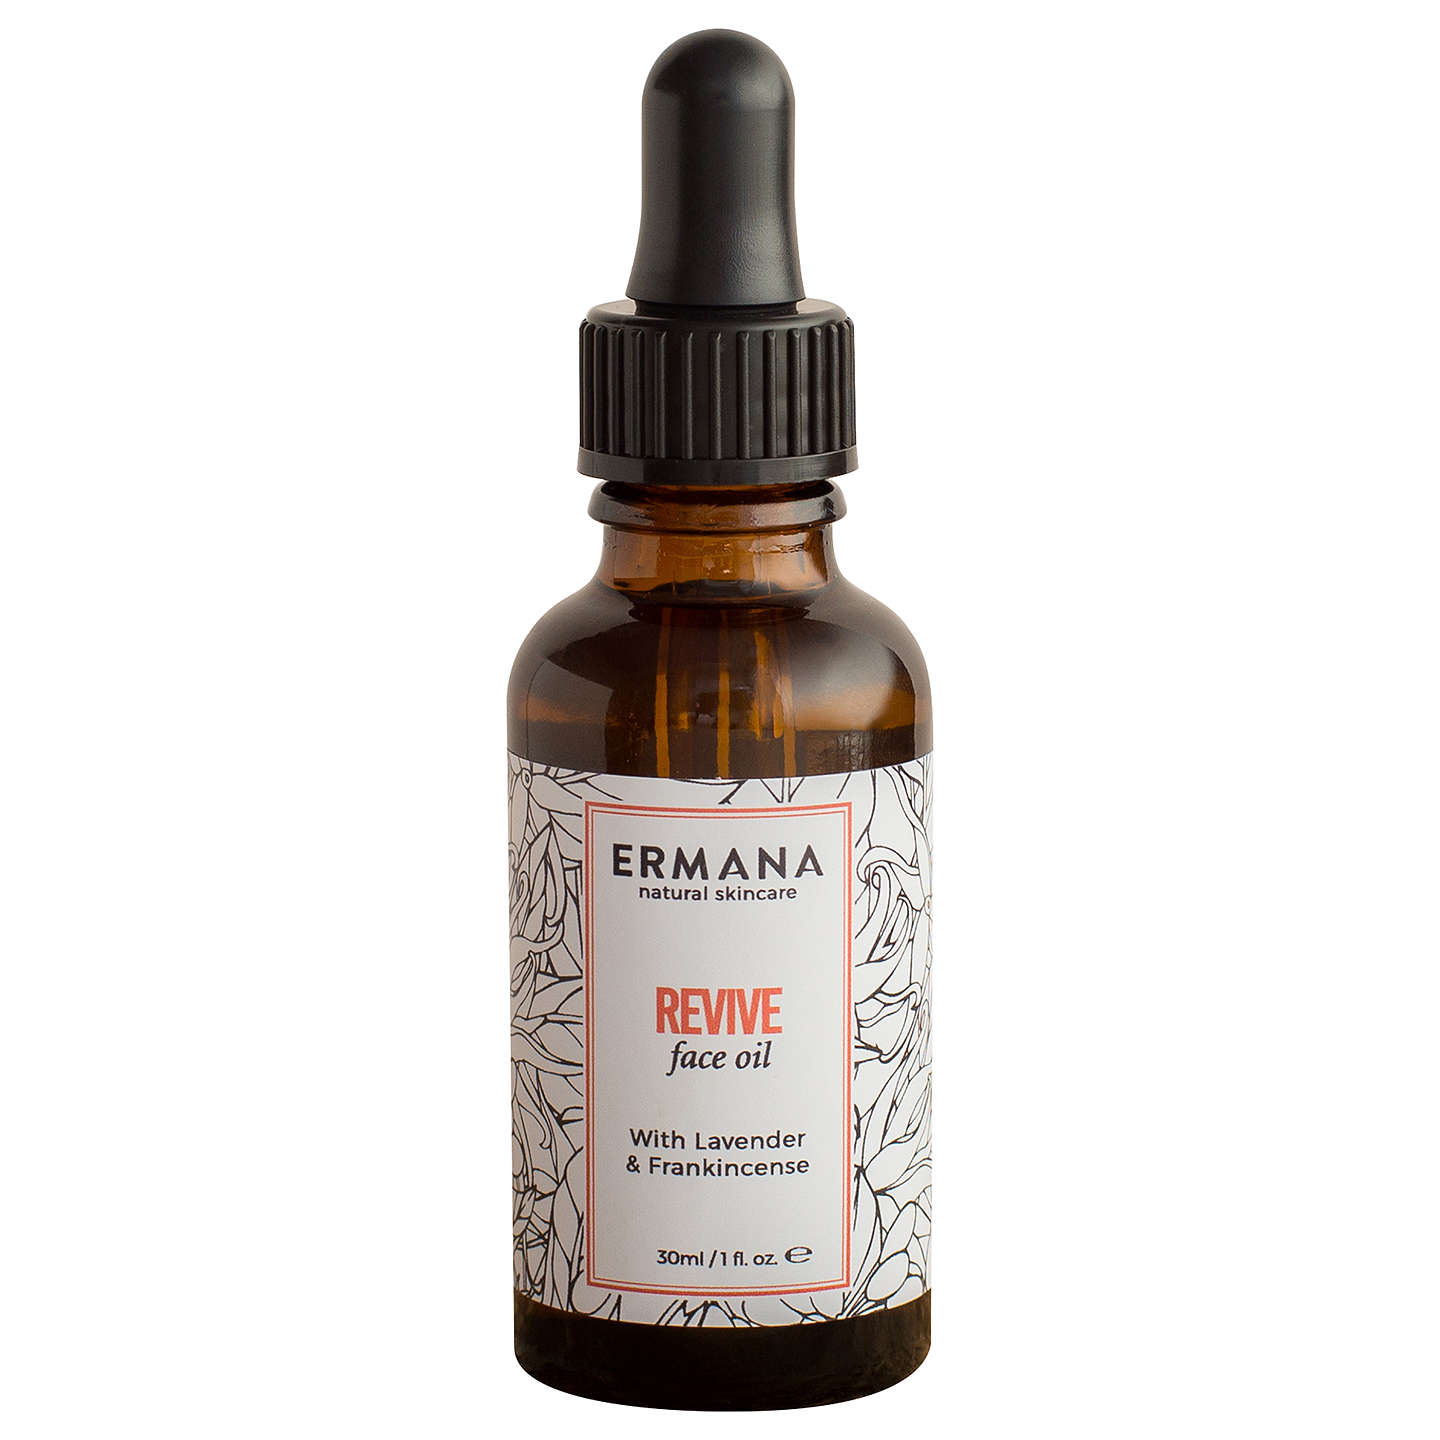 BuyErmana Revive Face Oil With Lavender & Frankincense, 30ml Online at johnlewis.com